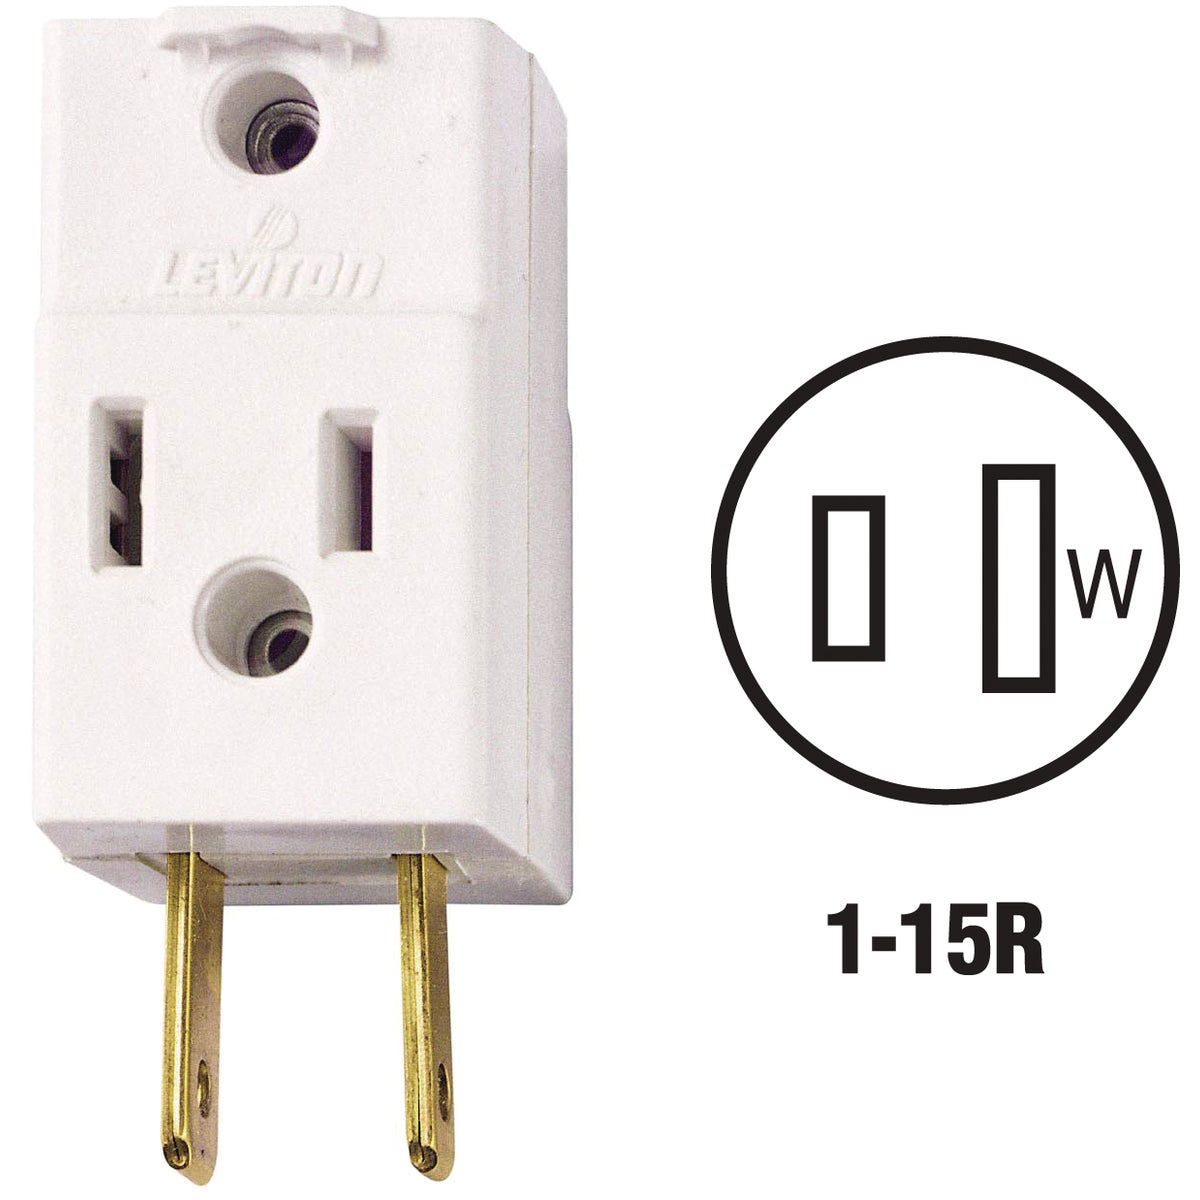 POLARIZED CUBE TAP - 531W by Leviton Mfg Co